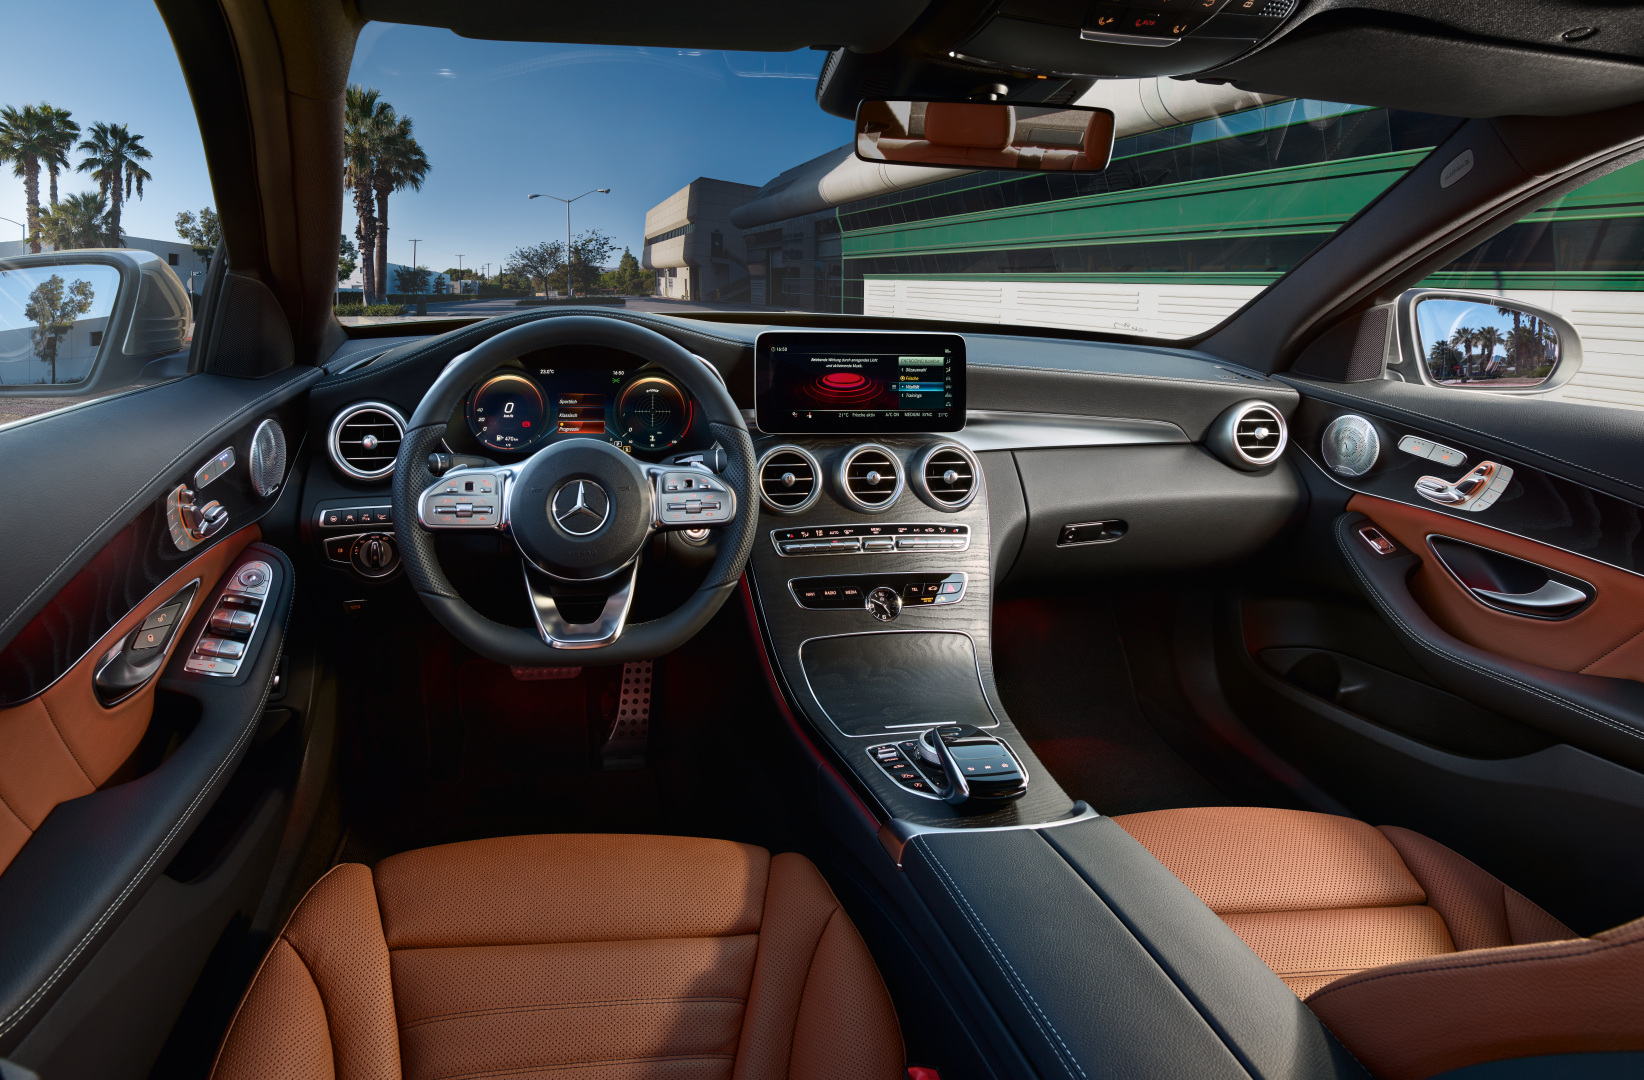 C-Class W/S/C/A205 Facelift, Still Image, W205, M06, Interior, dashboard, v01, CMYK - tif-file only!